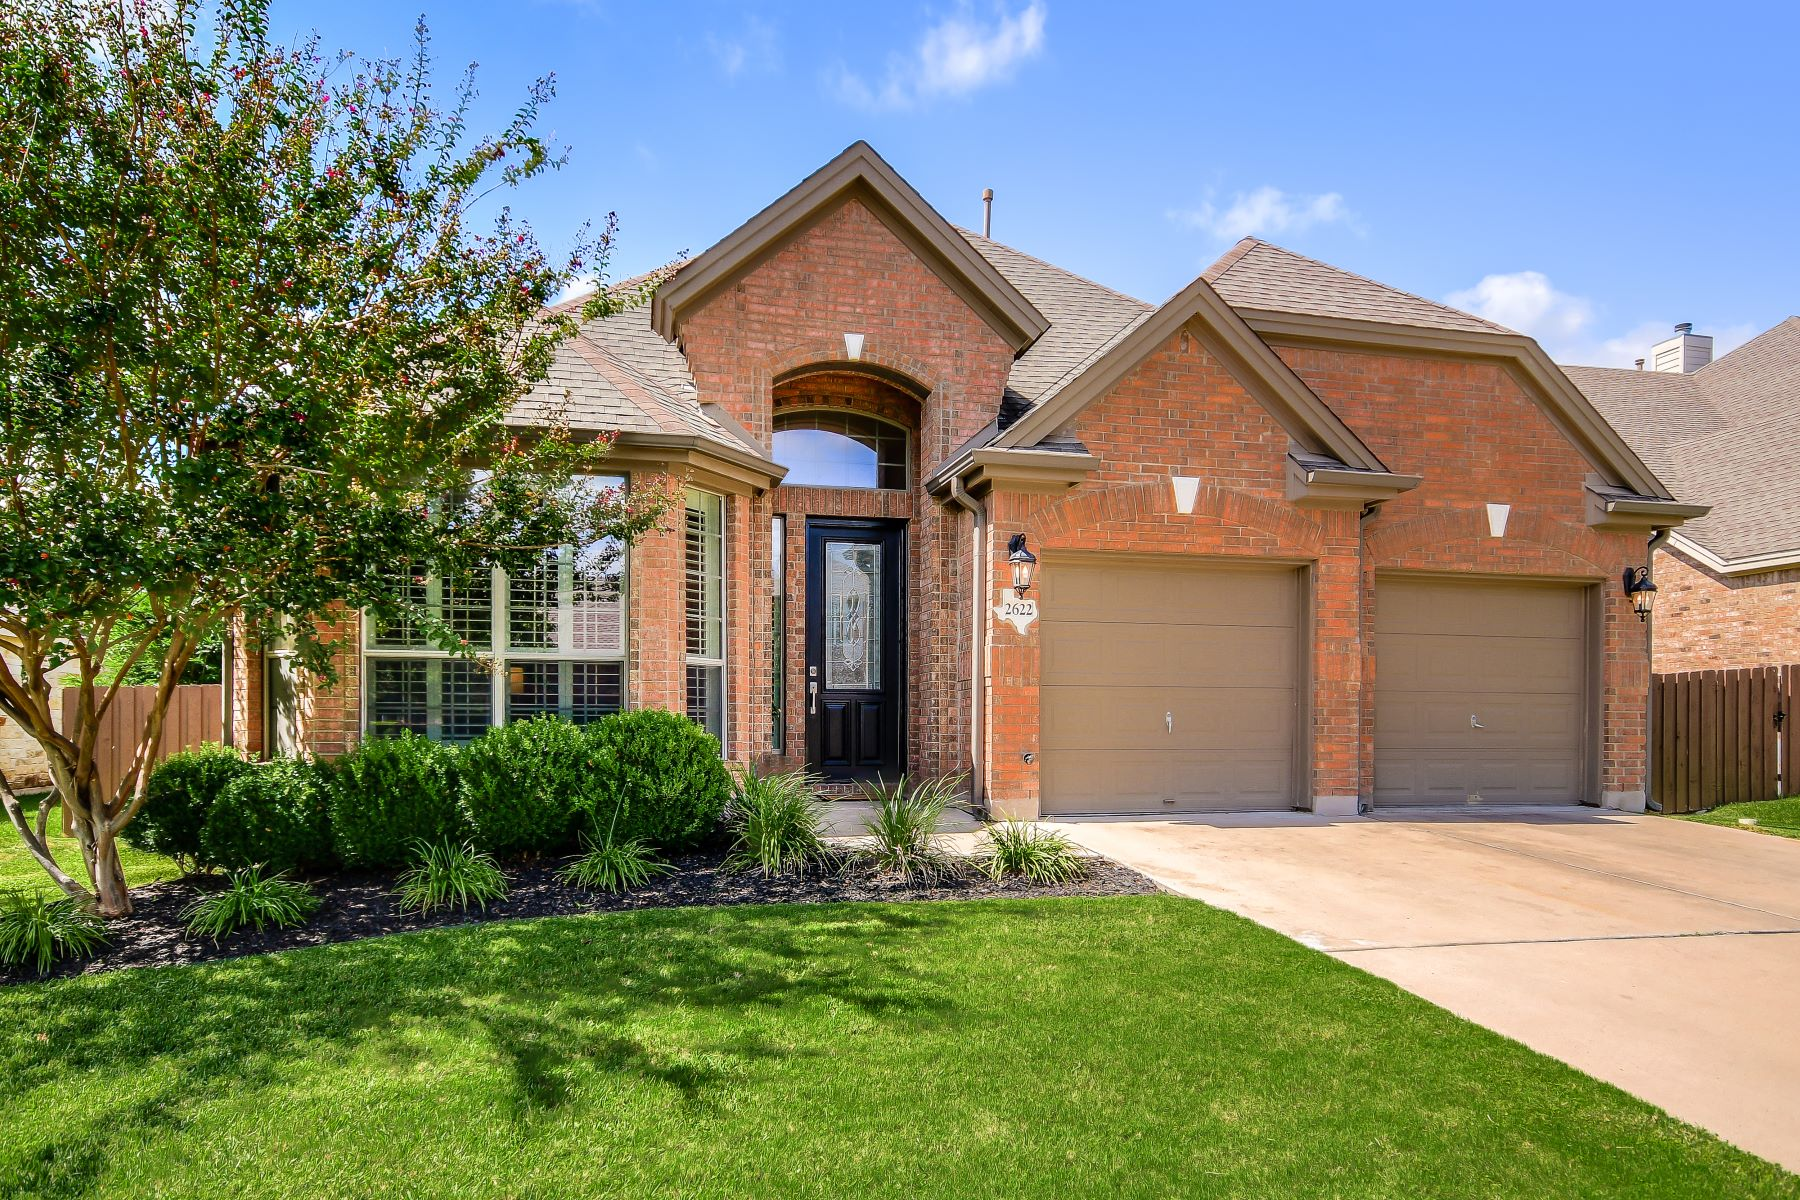 Single Family Homes for Sale at 2622 Plantation Drive, Round Rock, TX 78681 2622 Plantation Drive Round Rock, Texas 78681 United States